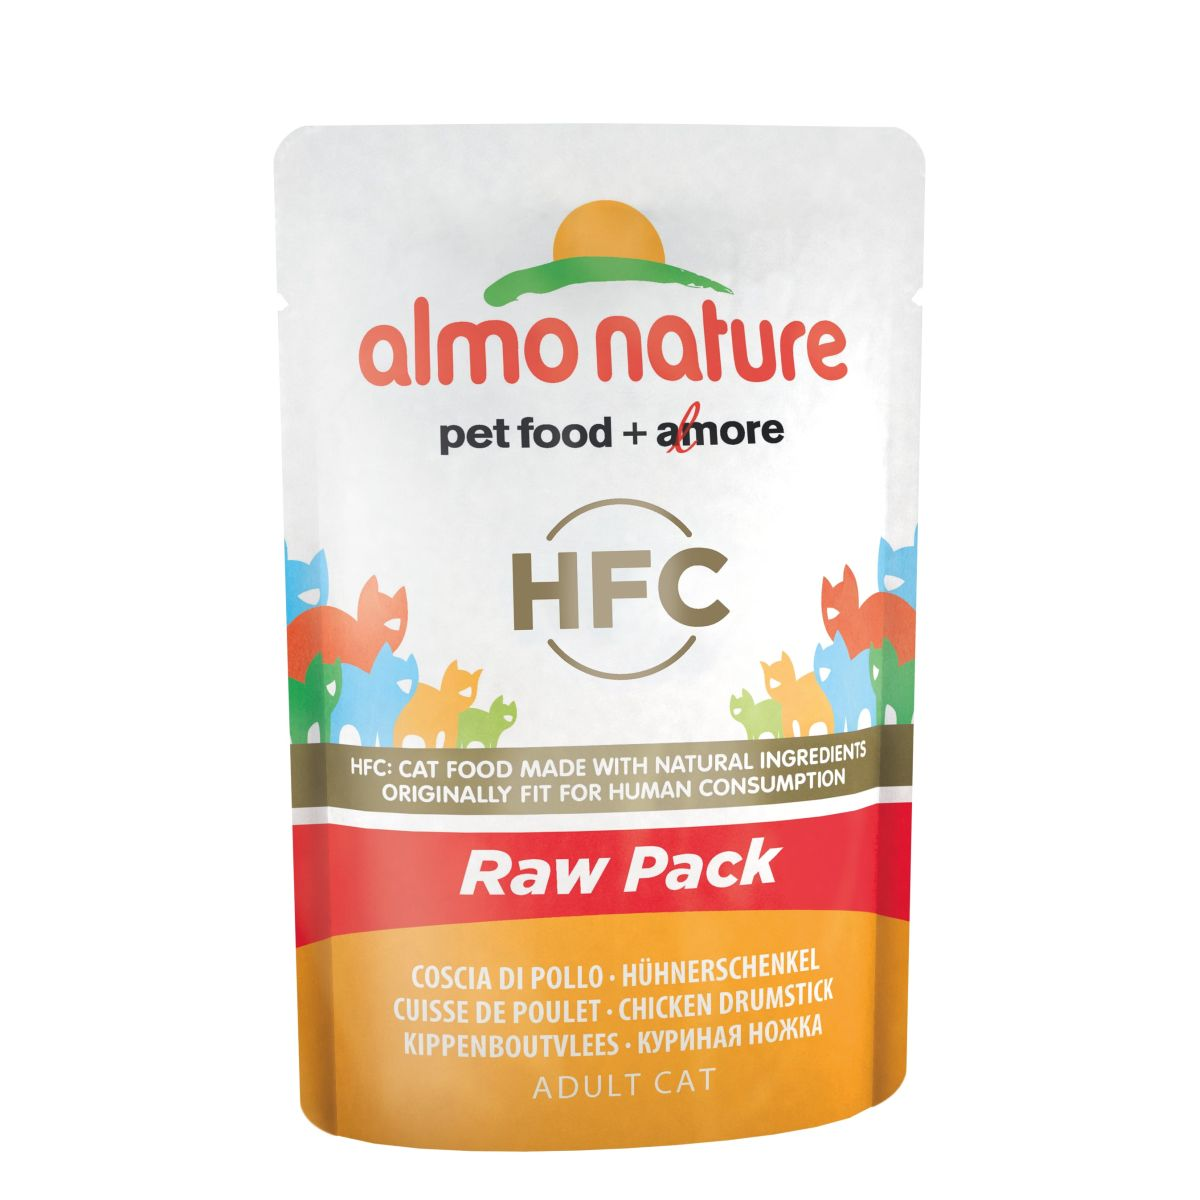 Almo Nature Classic Raw Pack Kippenbout 24 x 55 gr